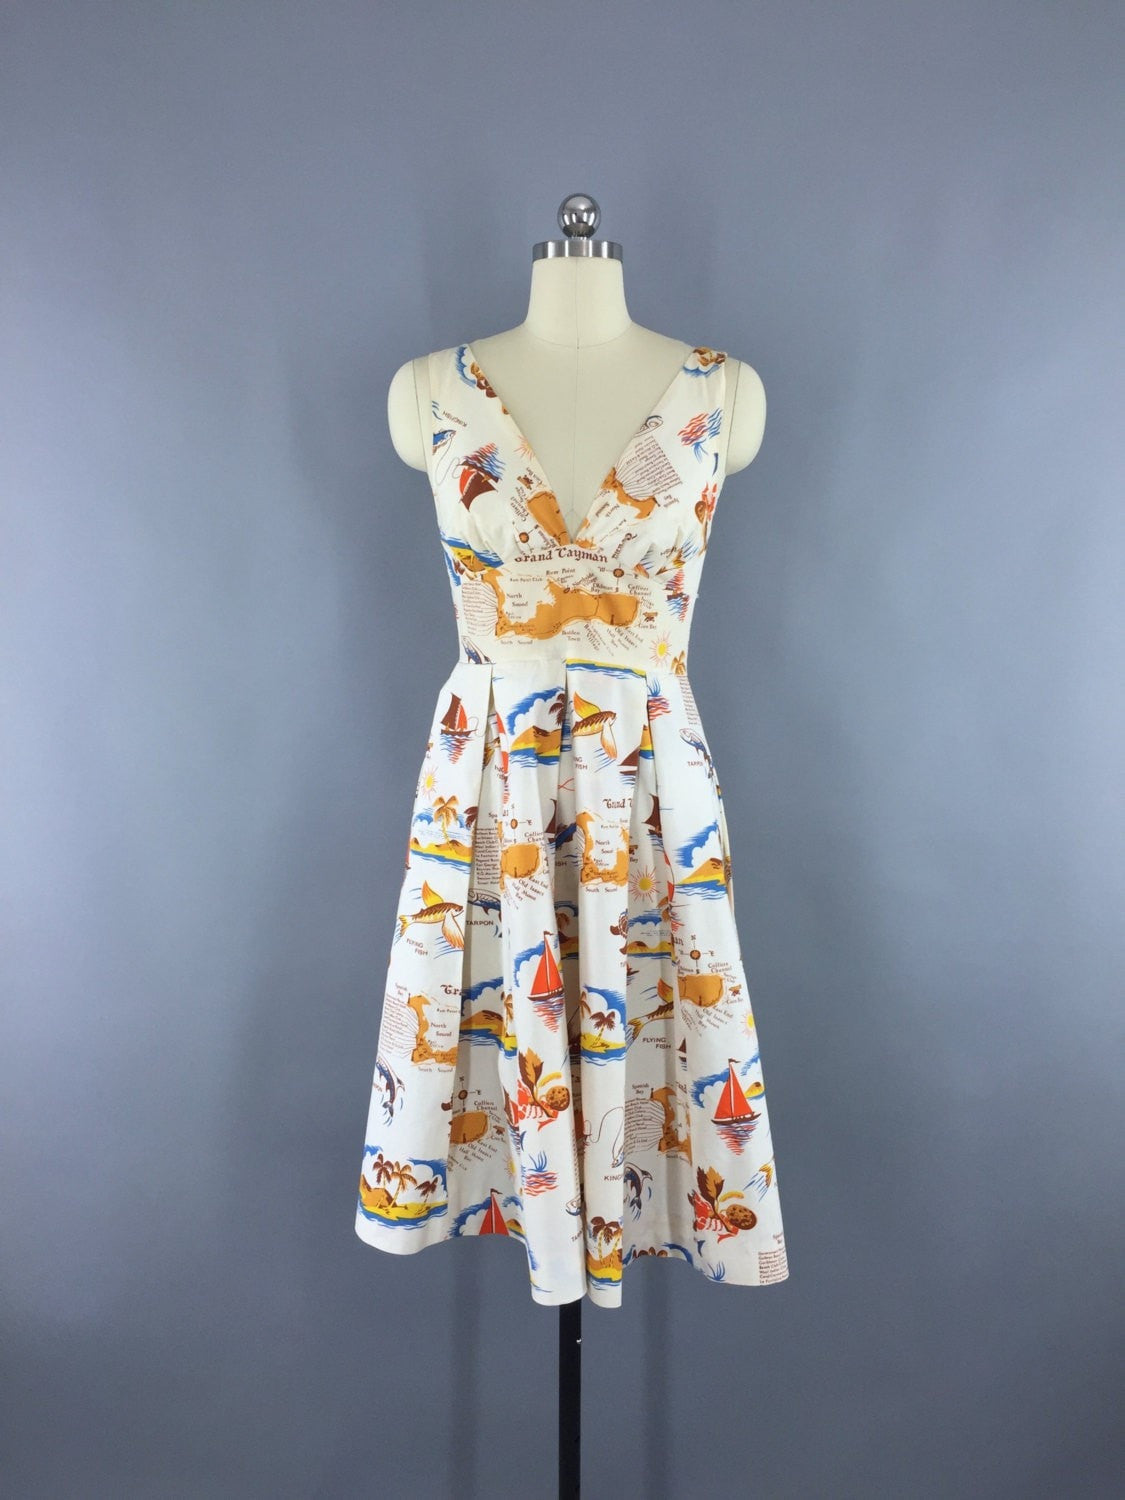 Vintage 1980s Dress / Cayman Islands Novelty Print Sundress Dress ThisBlueBird